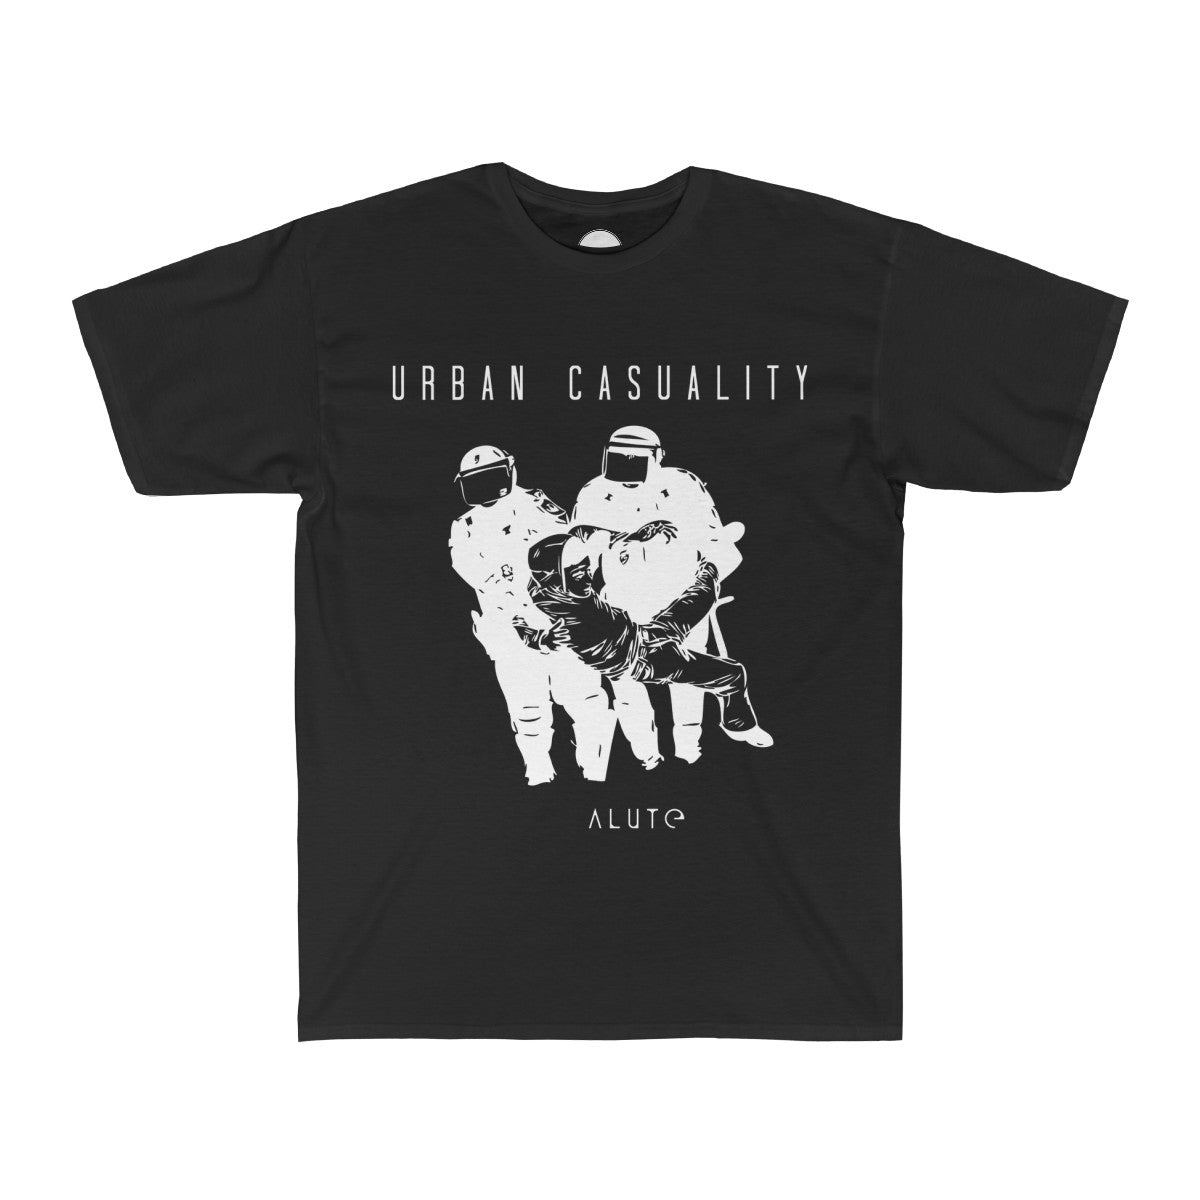 Alute Urban Casualty Short Sleeve Tee